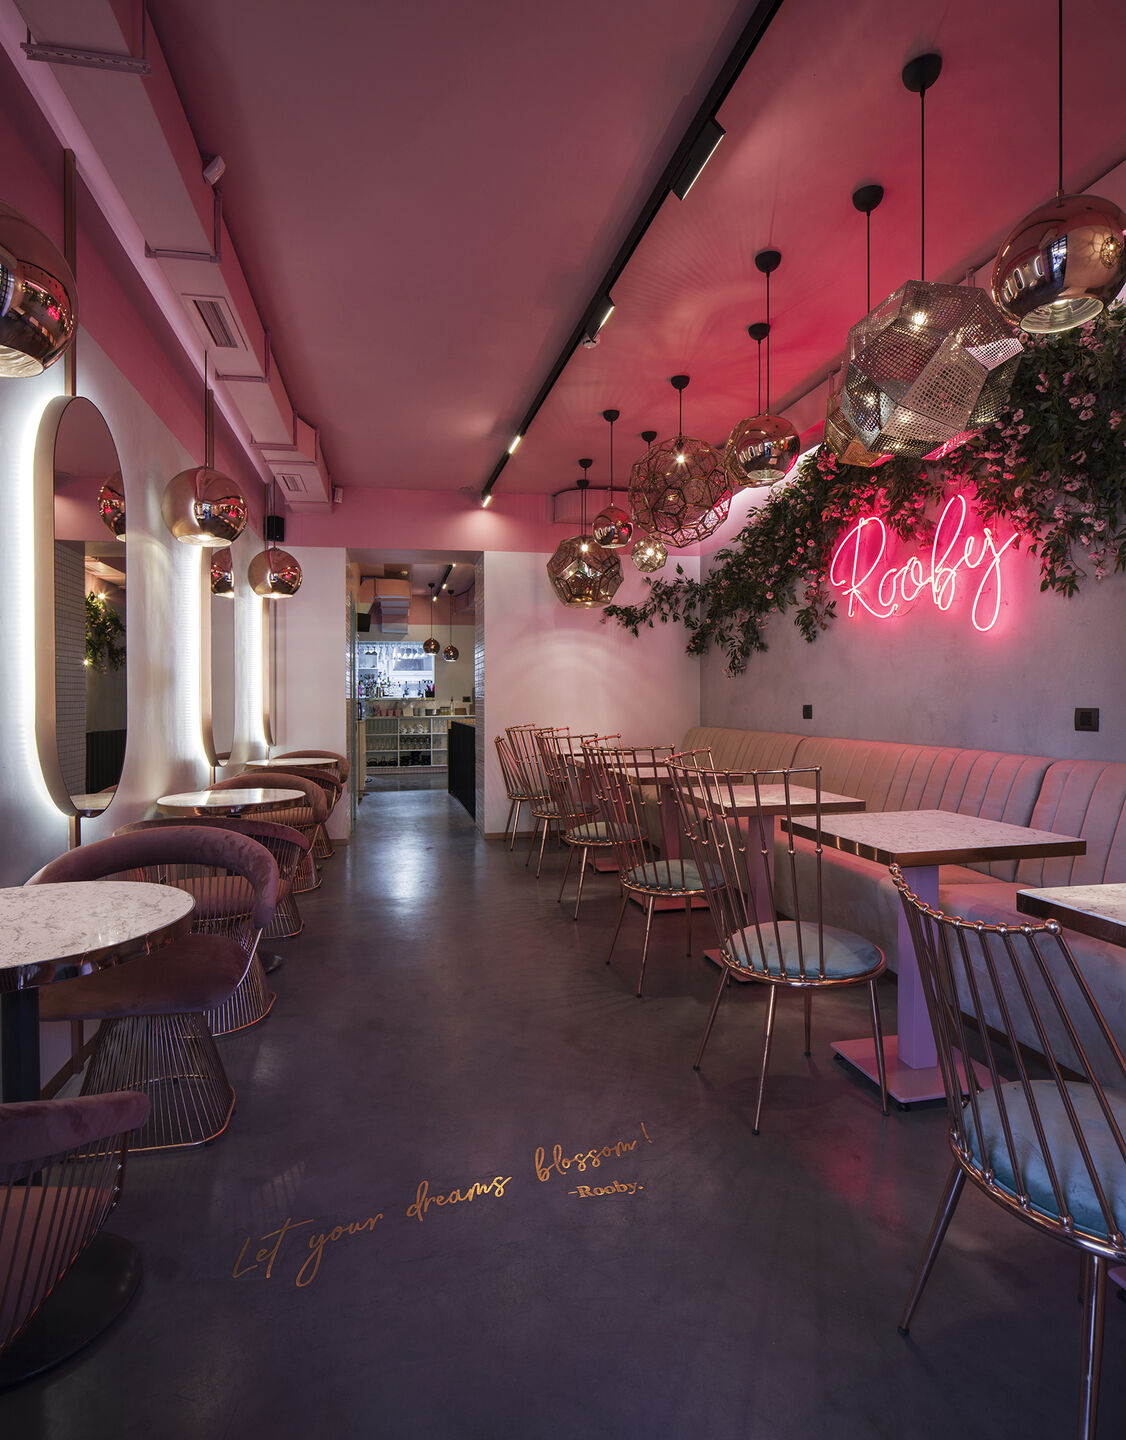 Rooby Fancy Cafe Futuris Architects Archello